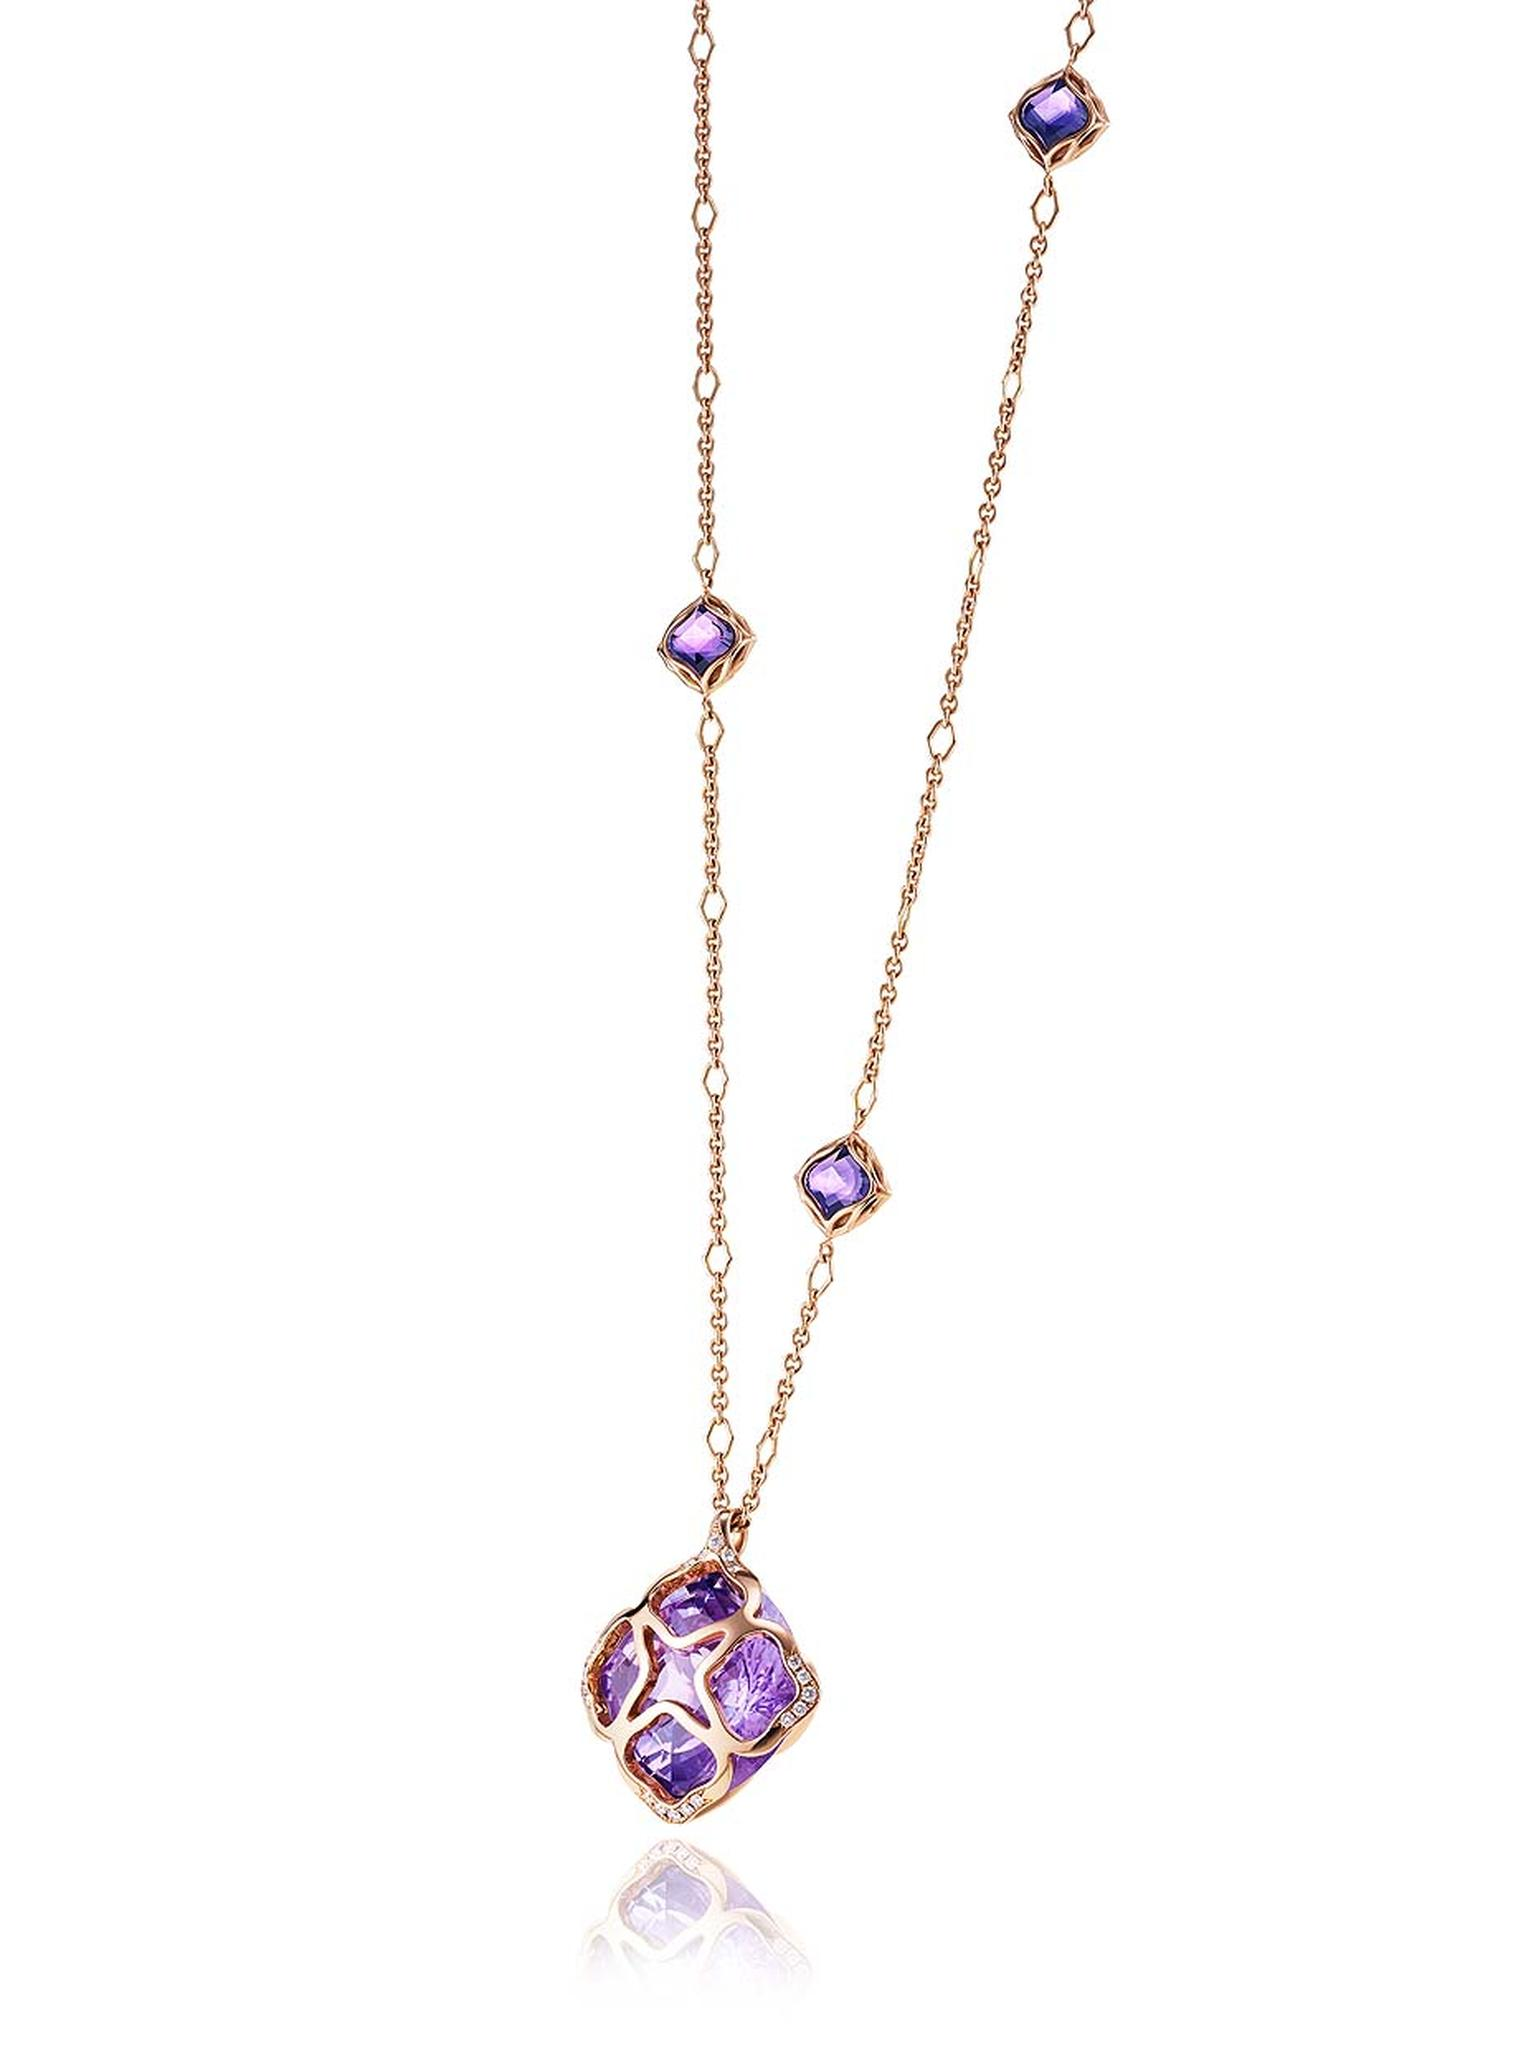 This Chopard jewellery pendant from the Imperiale high jewellery collection features a sparkling 48ct amethyst in a gold cage on the end of a long 18ct white or rose gold chain.